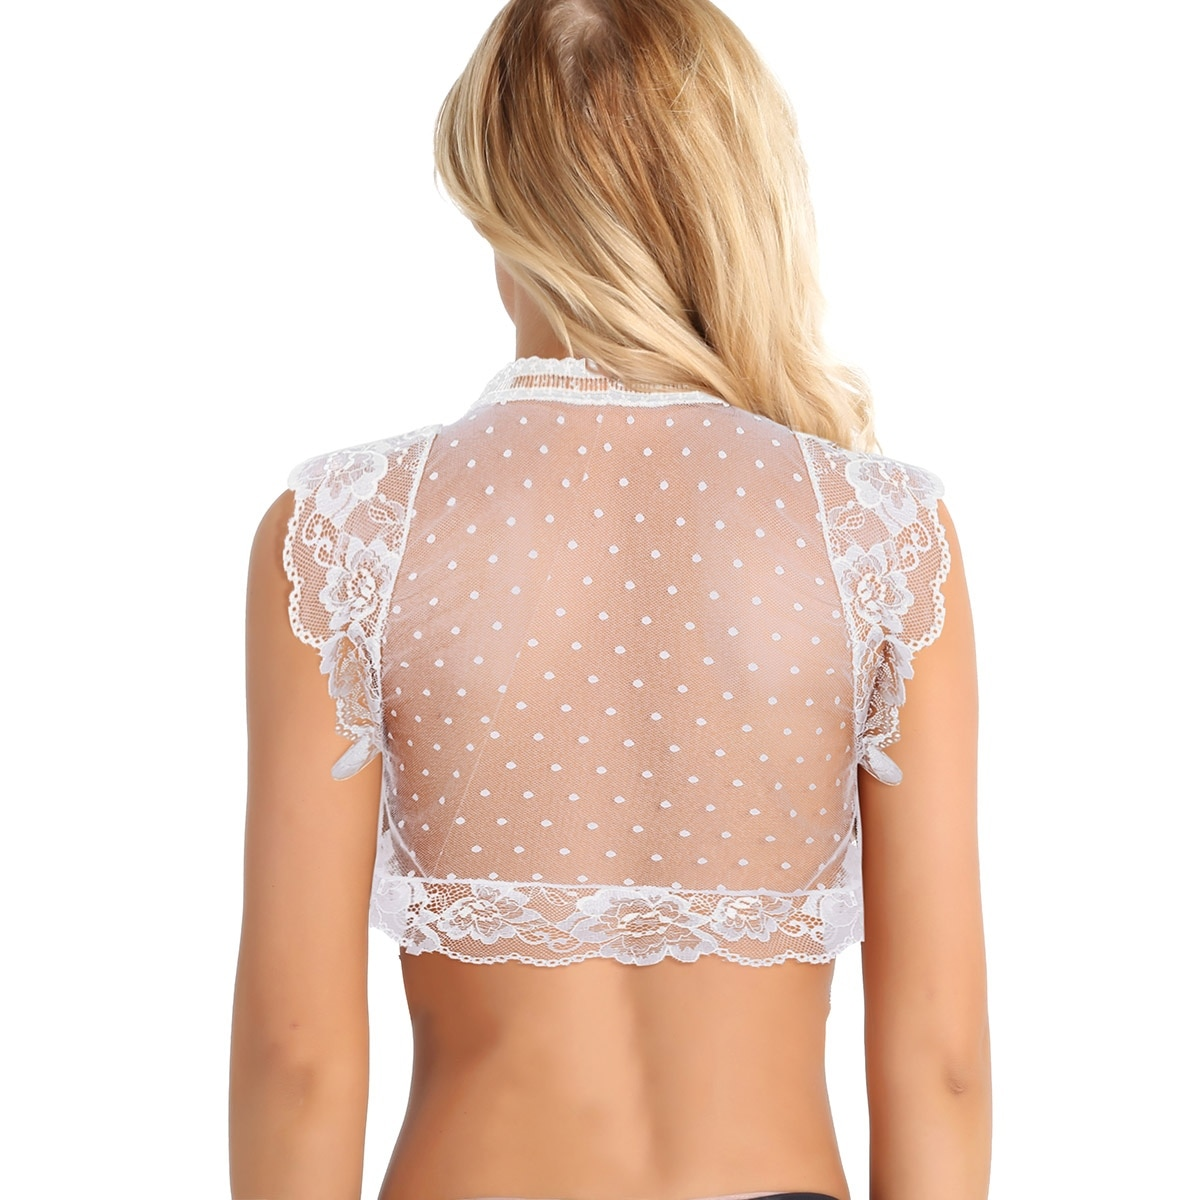 iEFiEL Womens Soft Mesh Open Front See Through Lingerie Floral Lace Bralette Cup Wireless Bra Tank Tops Sexy Clubwear Tank Tops